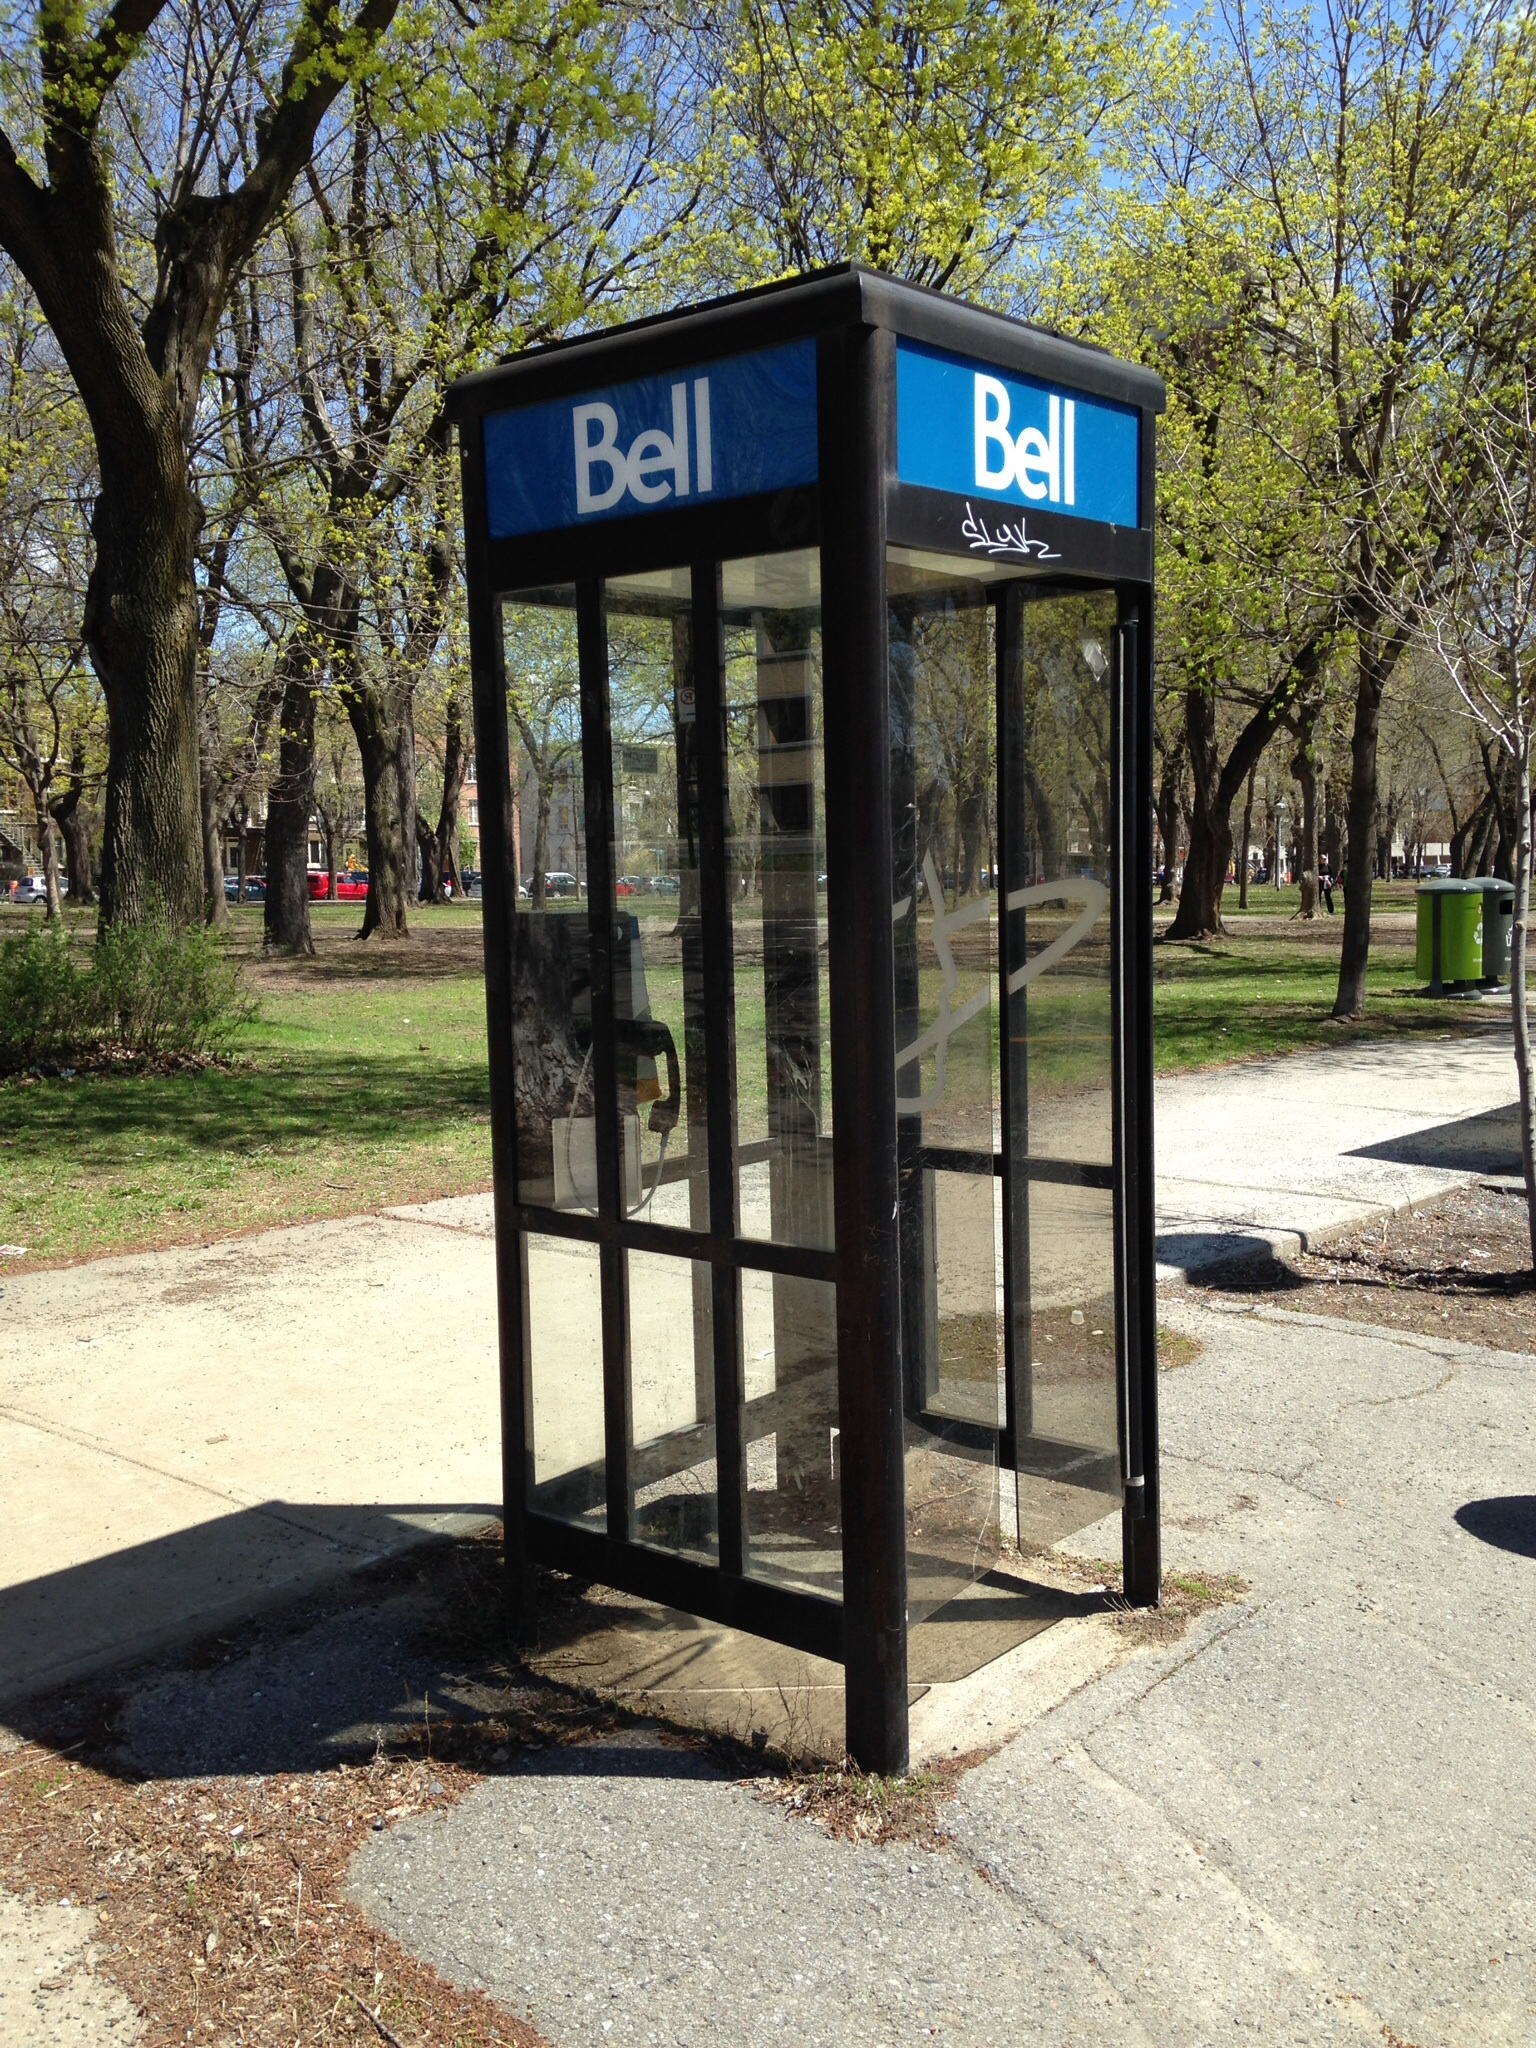 What? A phone booth!